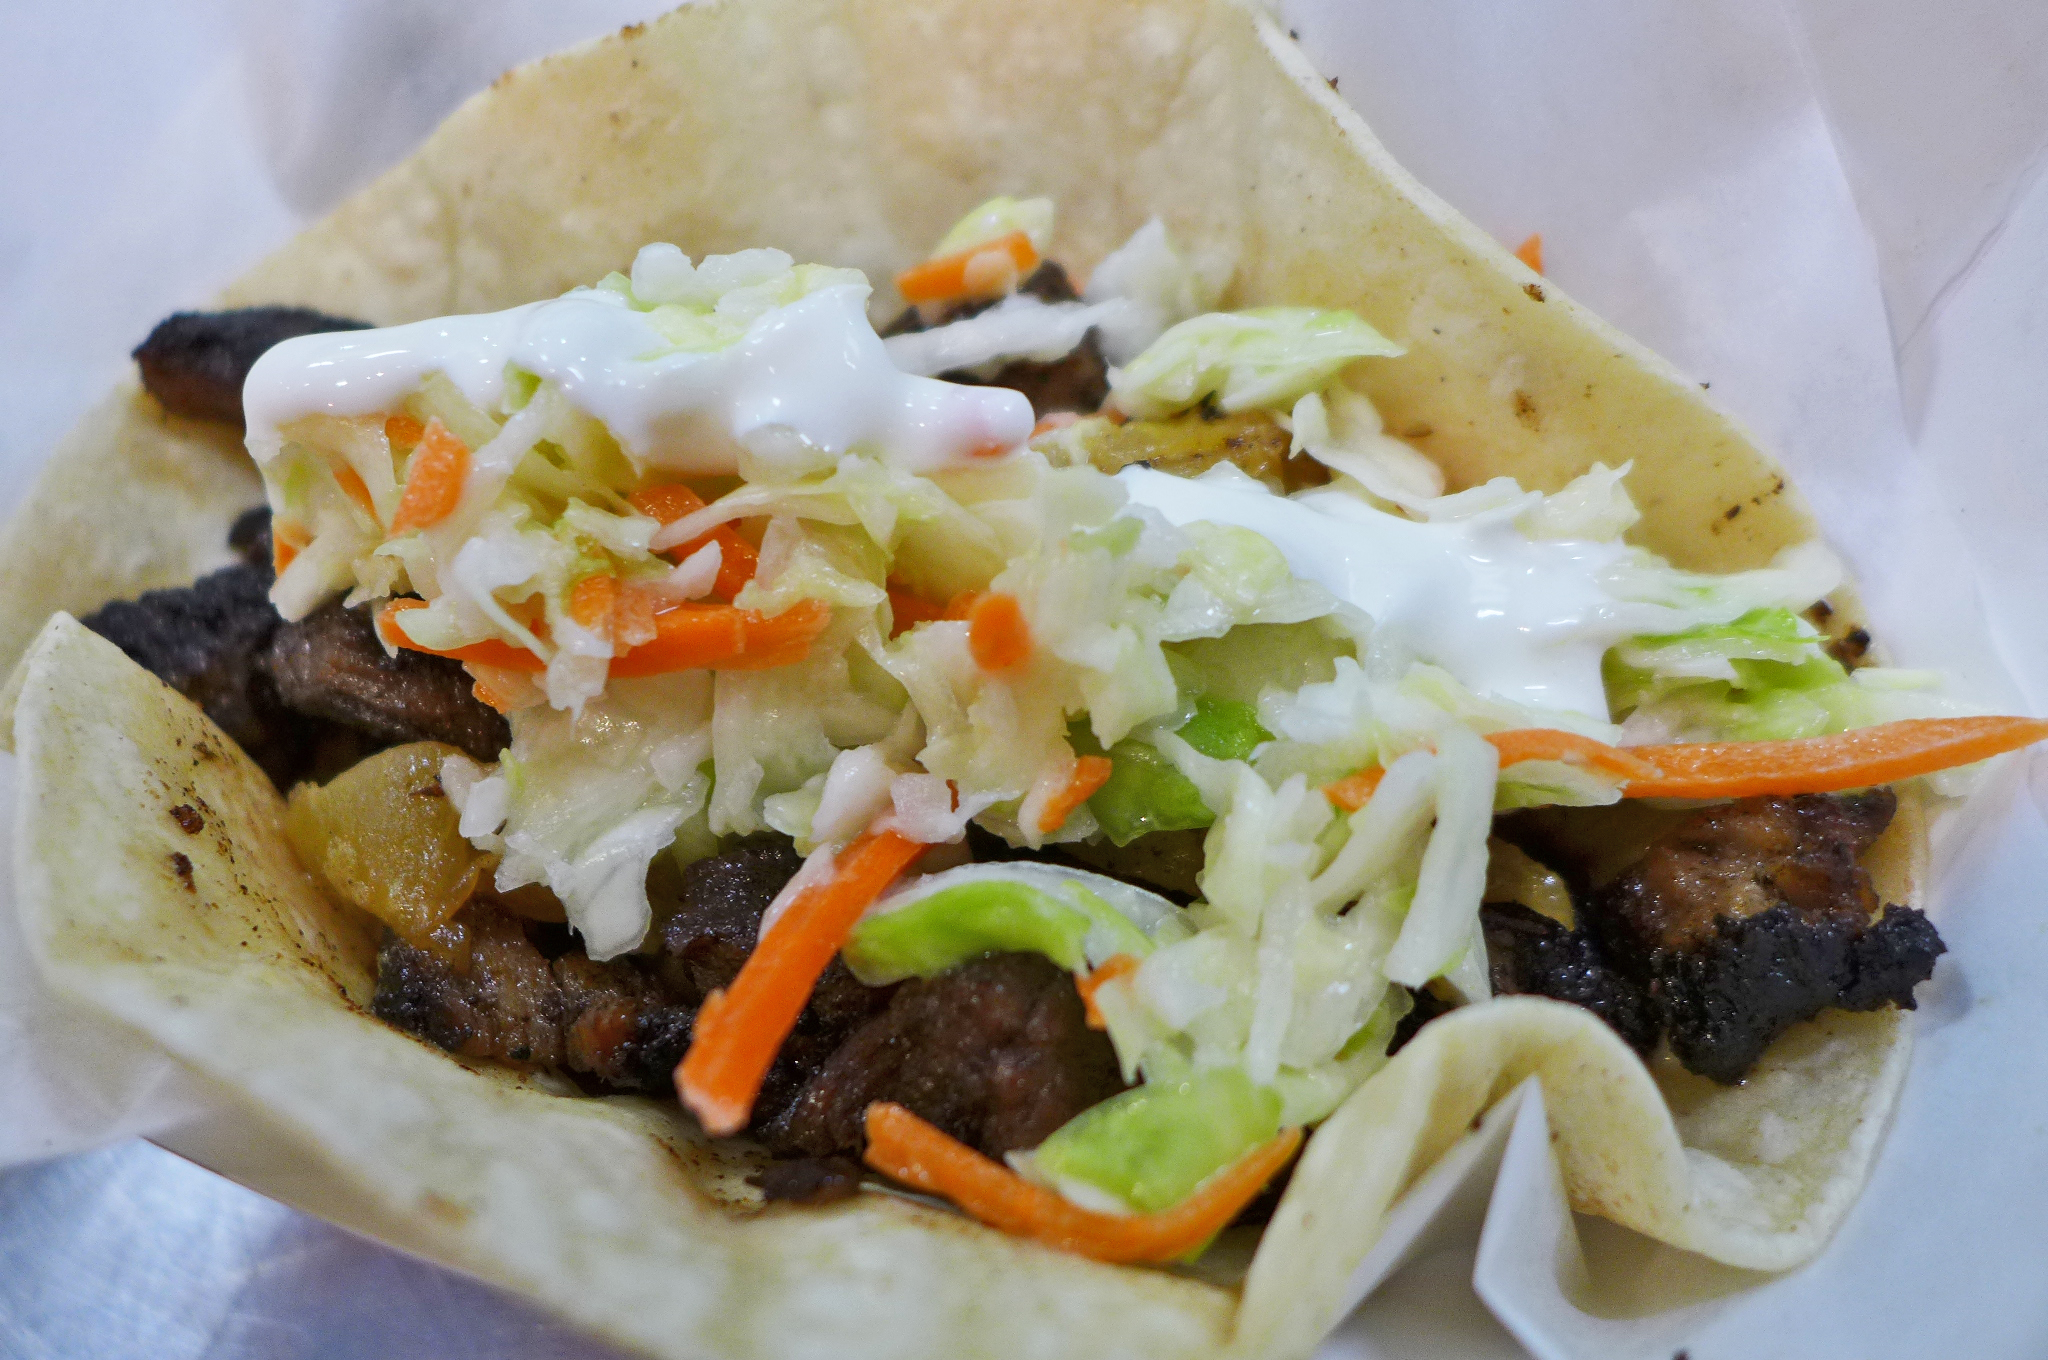 A soft corn tortilla holds dark chunks of meat, pineapple, pickled slaw, and bright white crema.